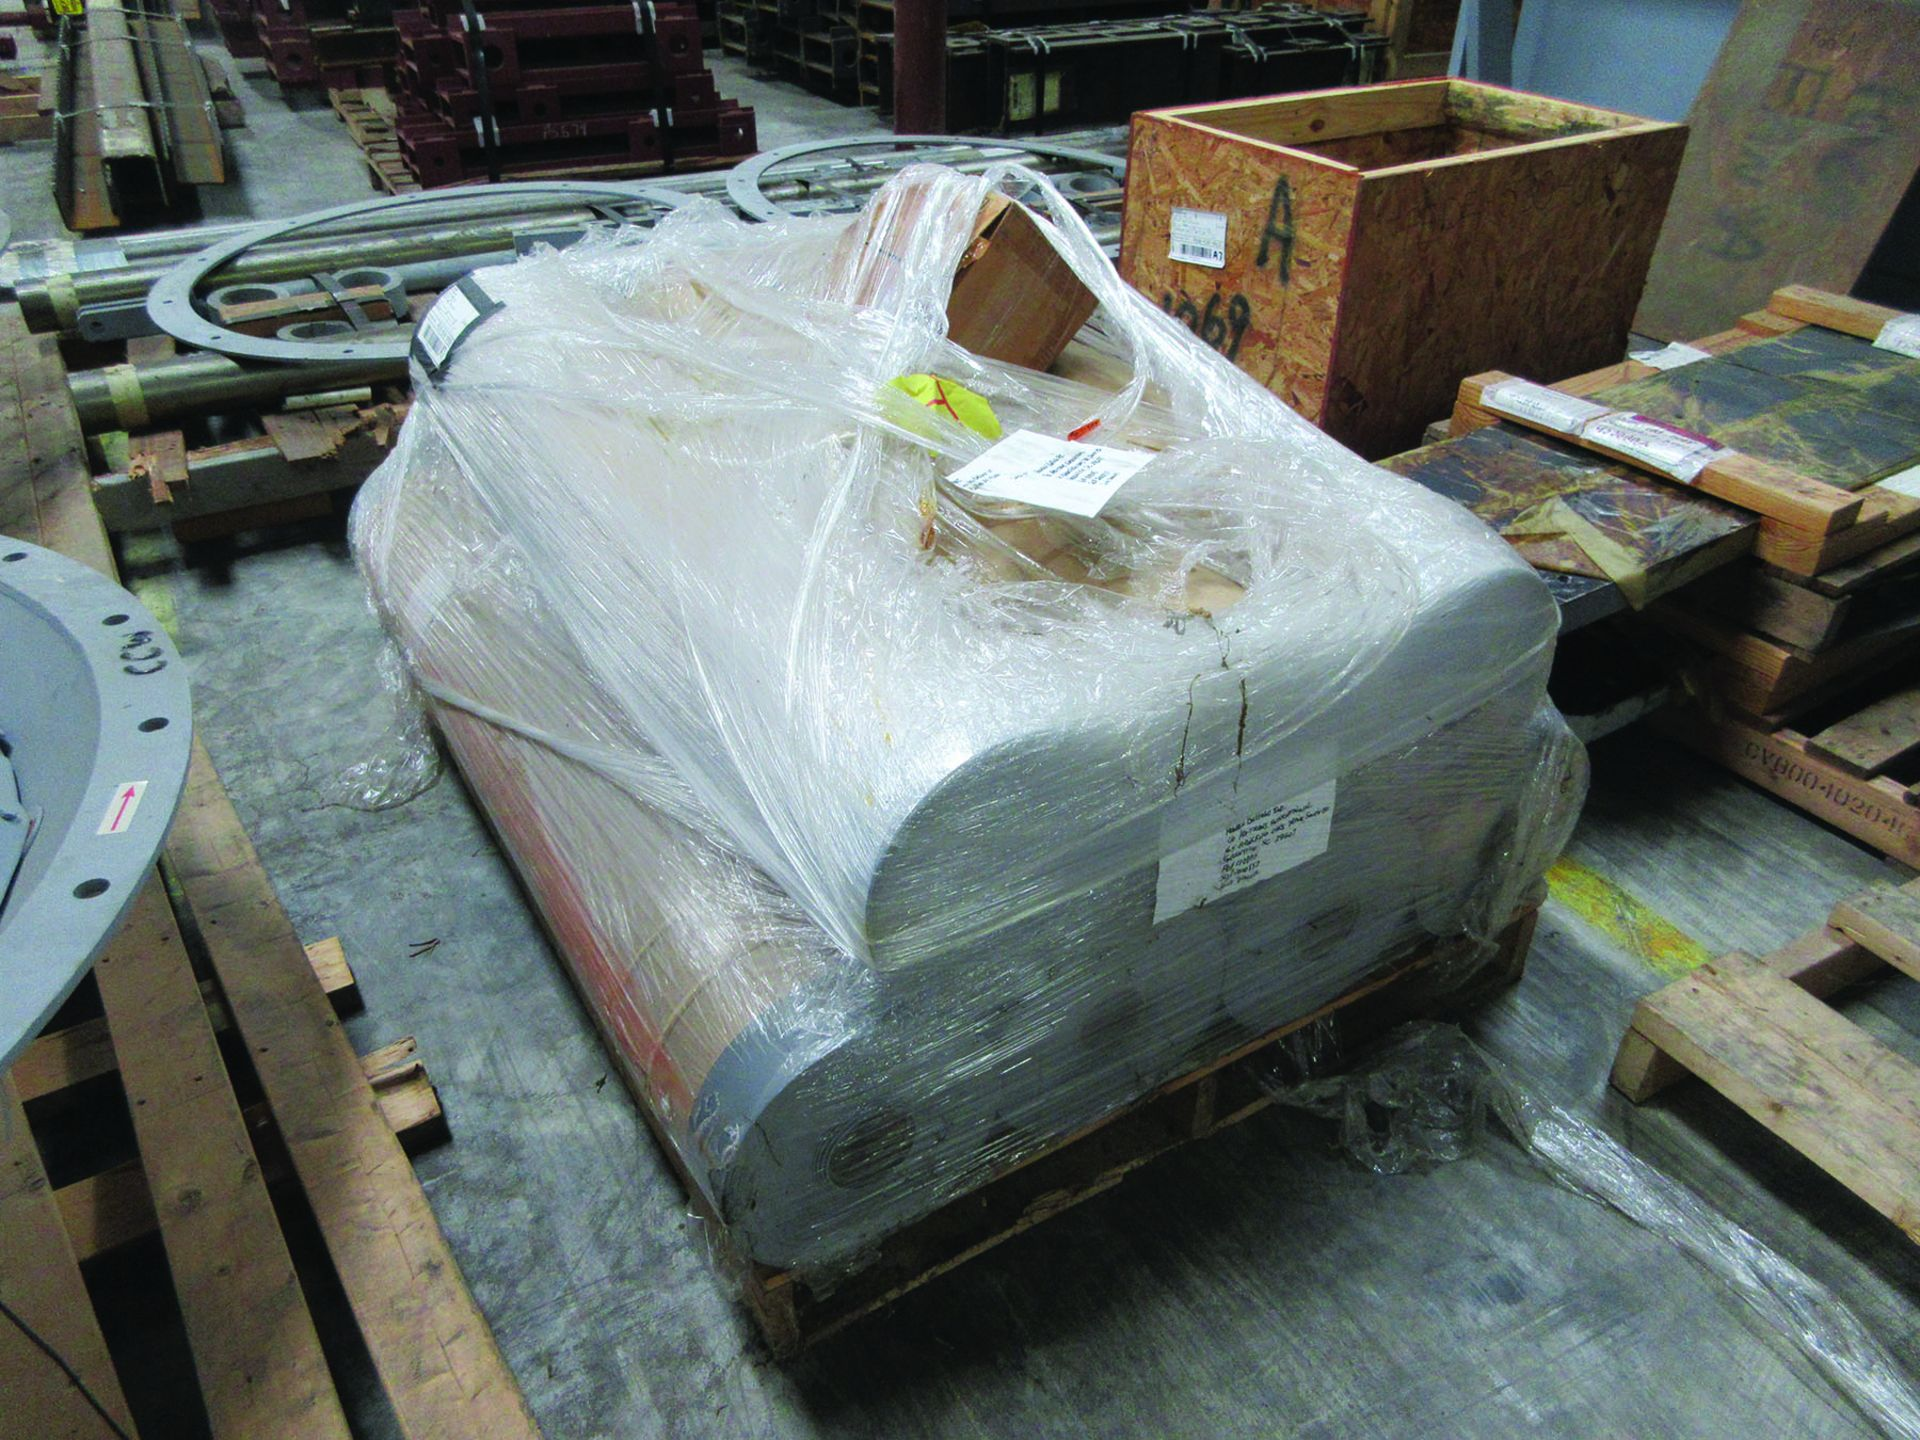 LOT OF ASSORTED PARTS: BARSETS, SHAFT COUPLINGS, COUPLING GUARDS, AND MORE, GRID A7 - Image 12 of 16